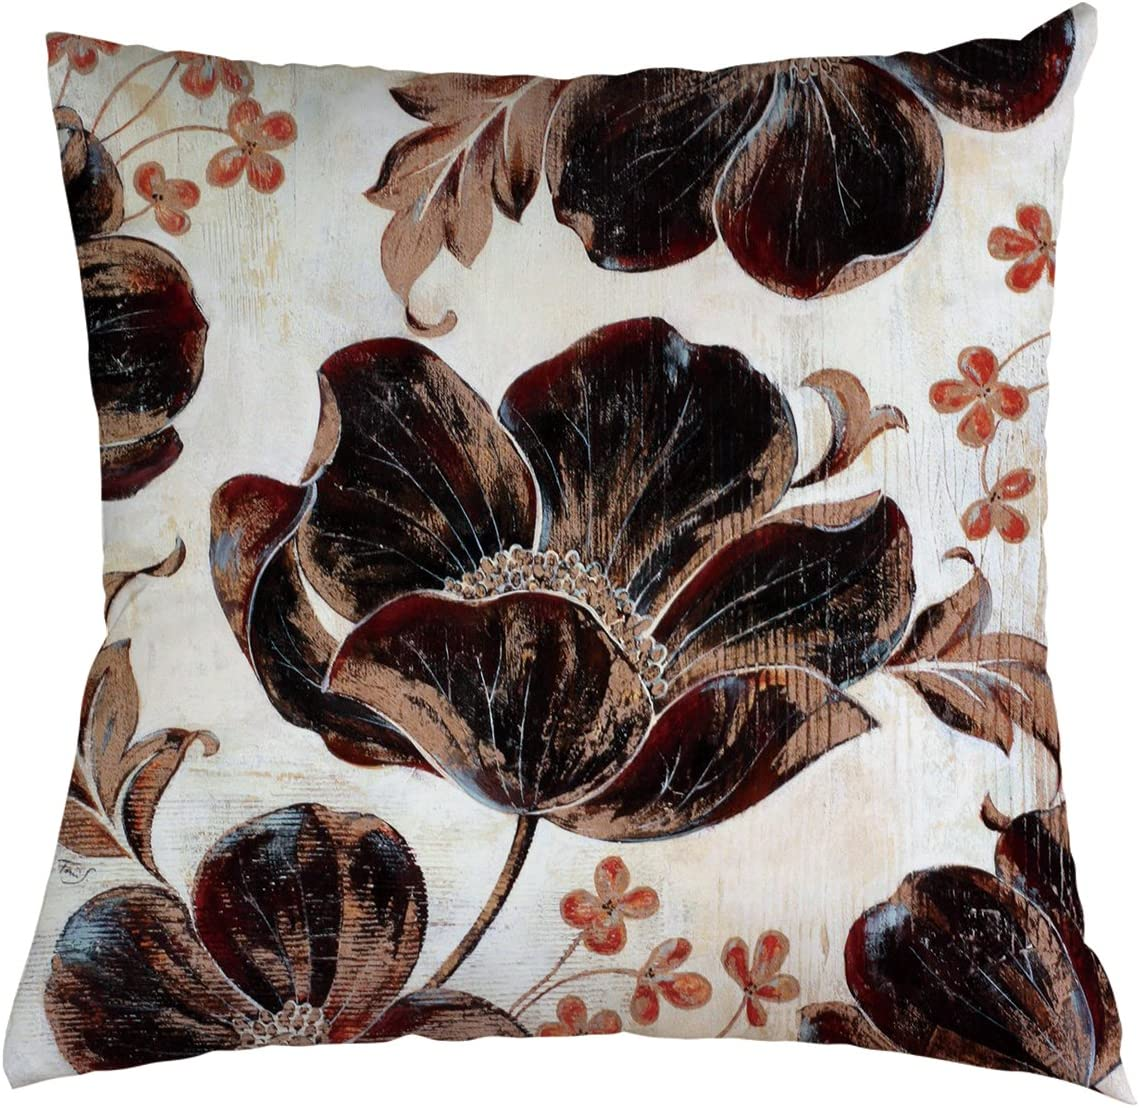 Amazon Com Flower Throw Pillow Cover Beautiful Flower Retro Black Flower Background For Couch Sofa Bed Car Seats Home Decorative Throw Pillow Case 16 X16 Home Kitchen